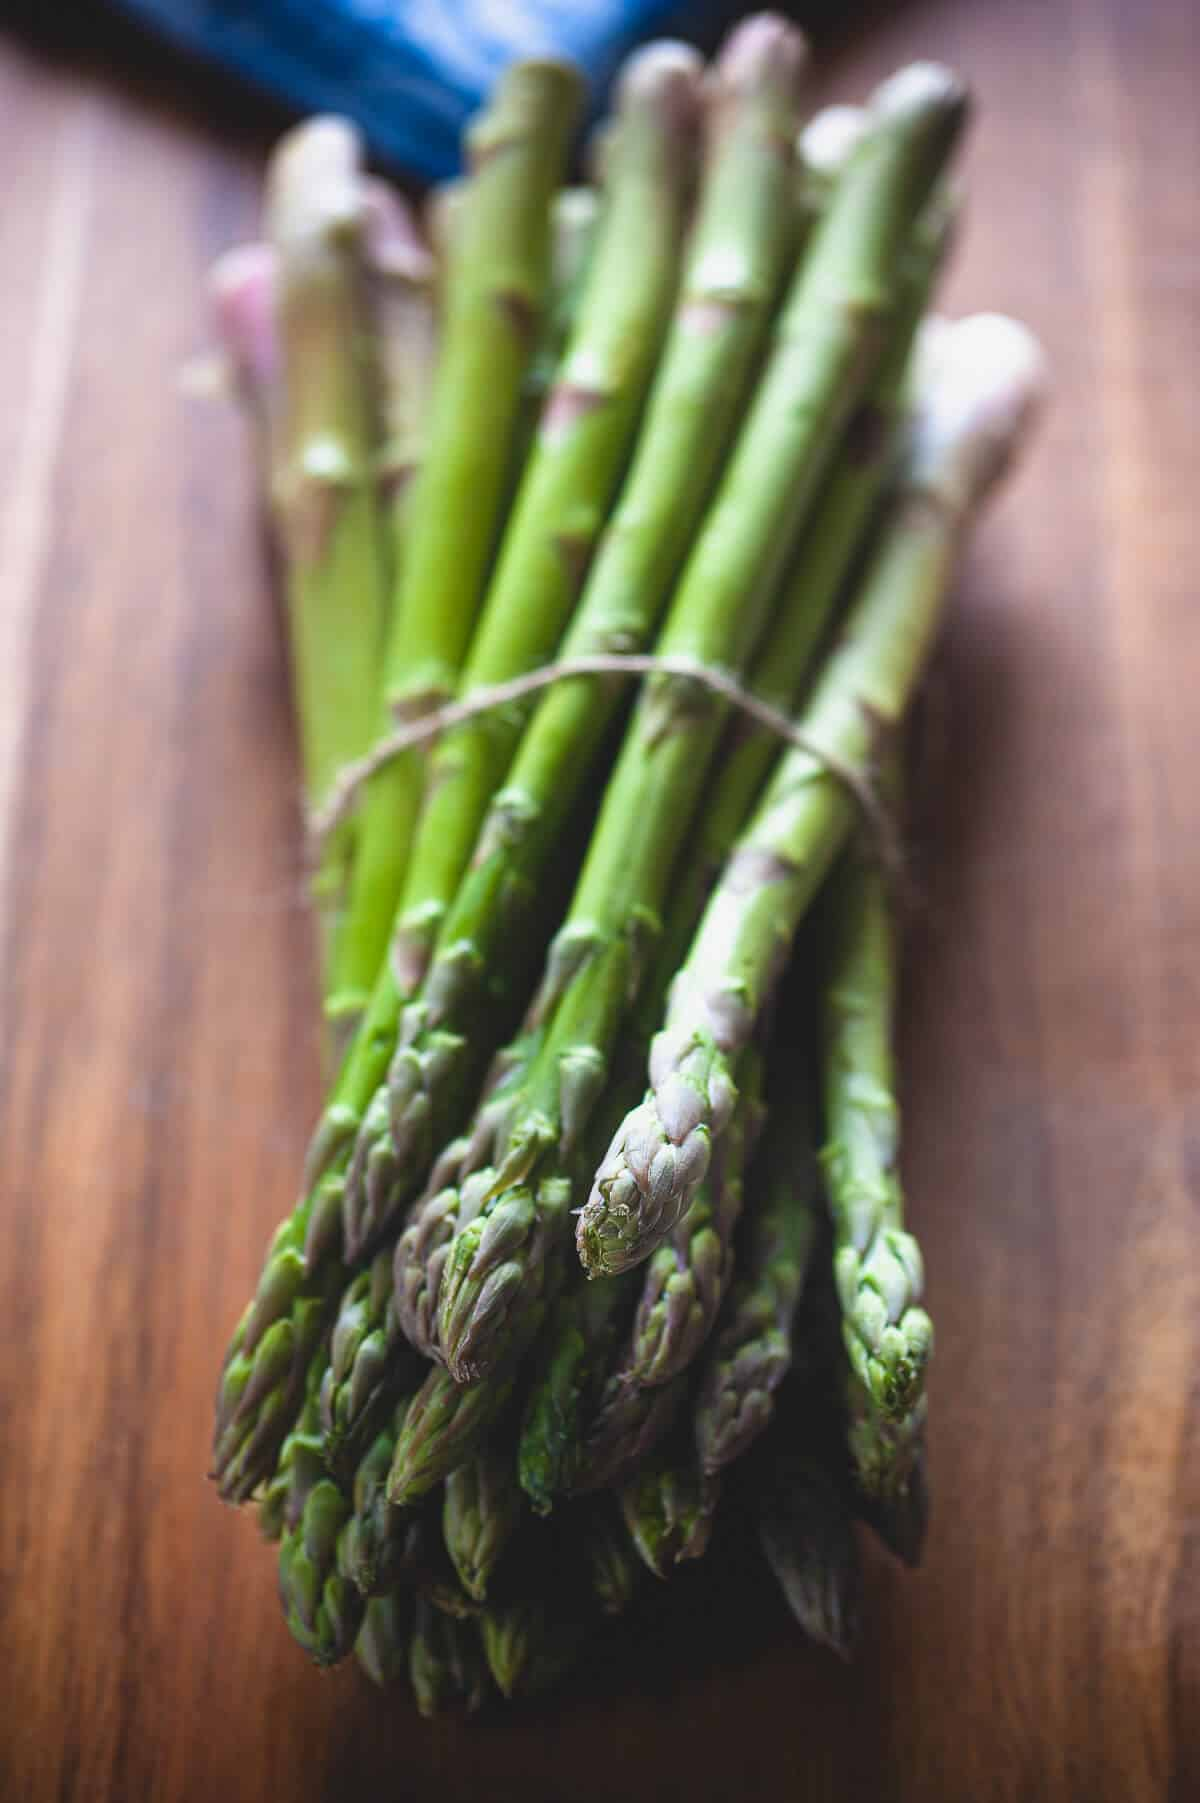 a bunch of asparagus on a wooden table